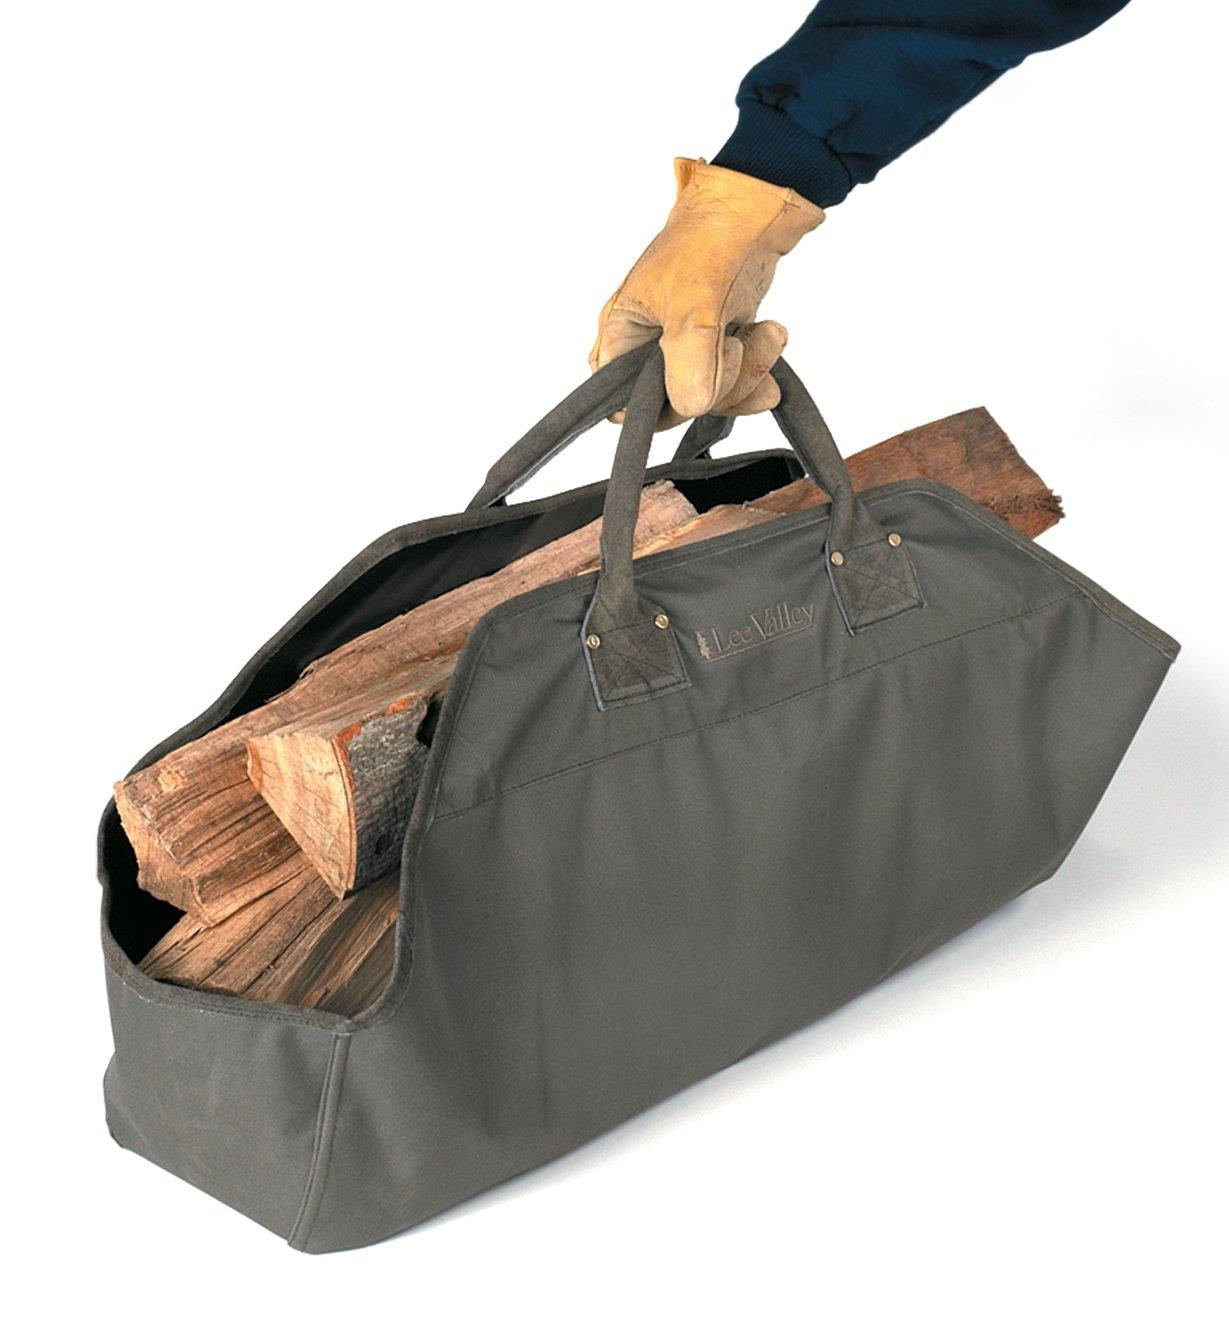 WT690 - Lee Valley Firewood Tote